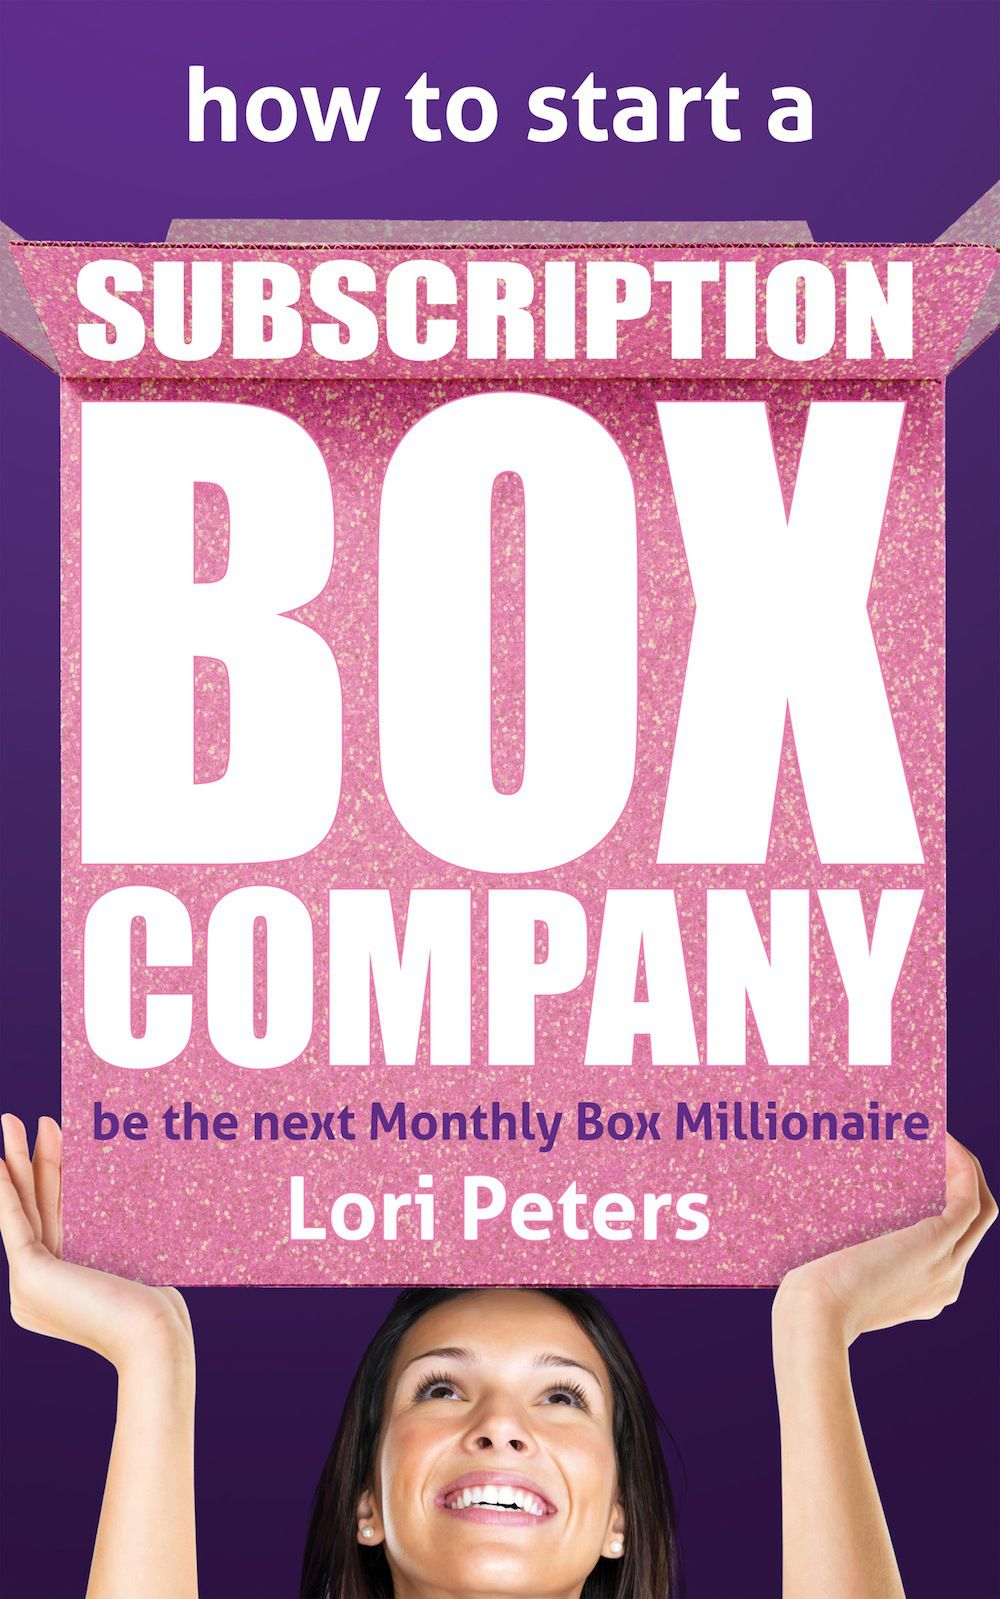 Classes Now Starting for How to Start a Subscription Box